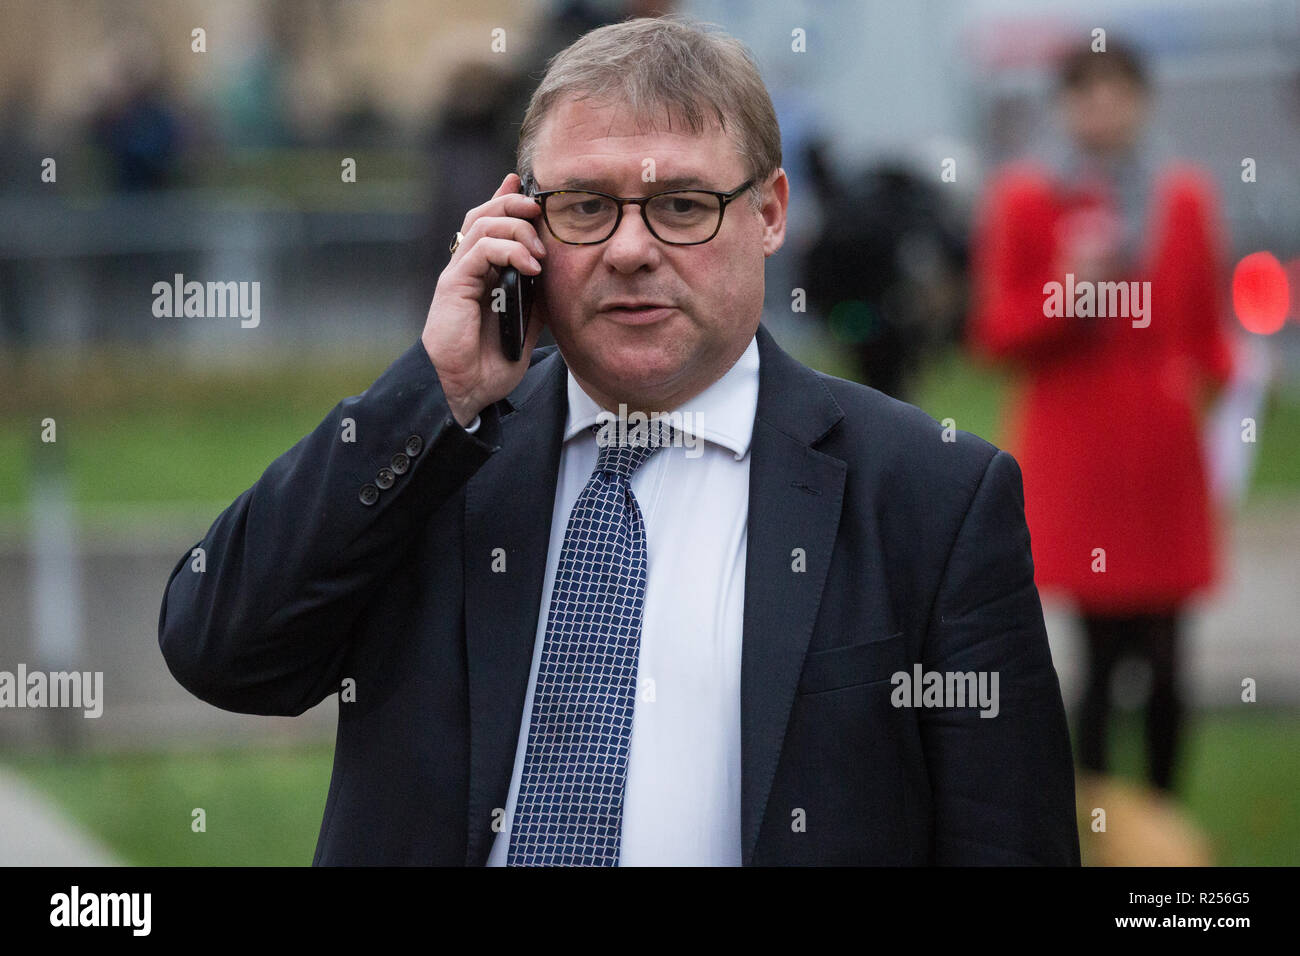 London, UK. 16th November, 2018. Mark Francois, Conservative MP for Rayleigh and Wickford, appears on College Green in Westminster as uncertainty continues around the survival of Prime Minister Theresa May's Government and the number of letters of no confidence submitted to the 1922 Committee. - Stock Image